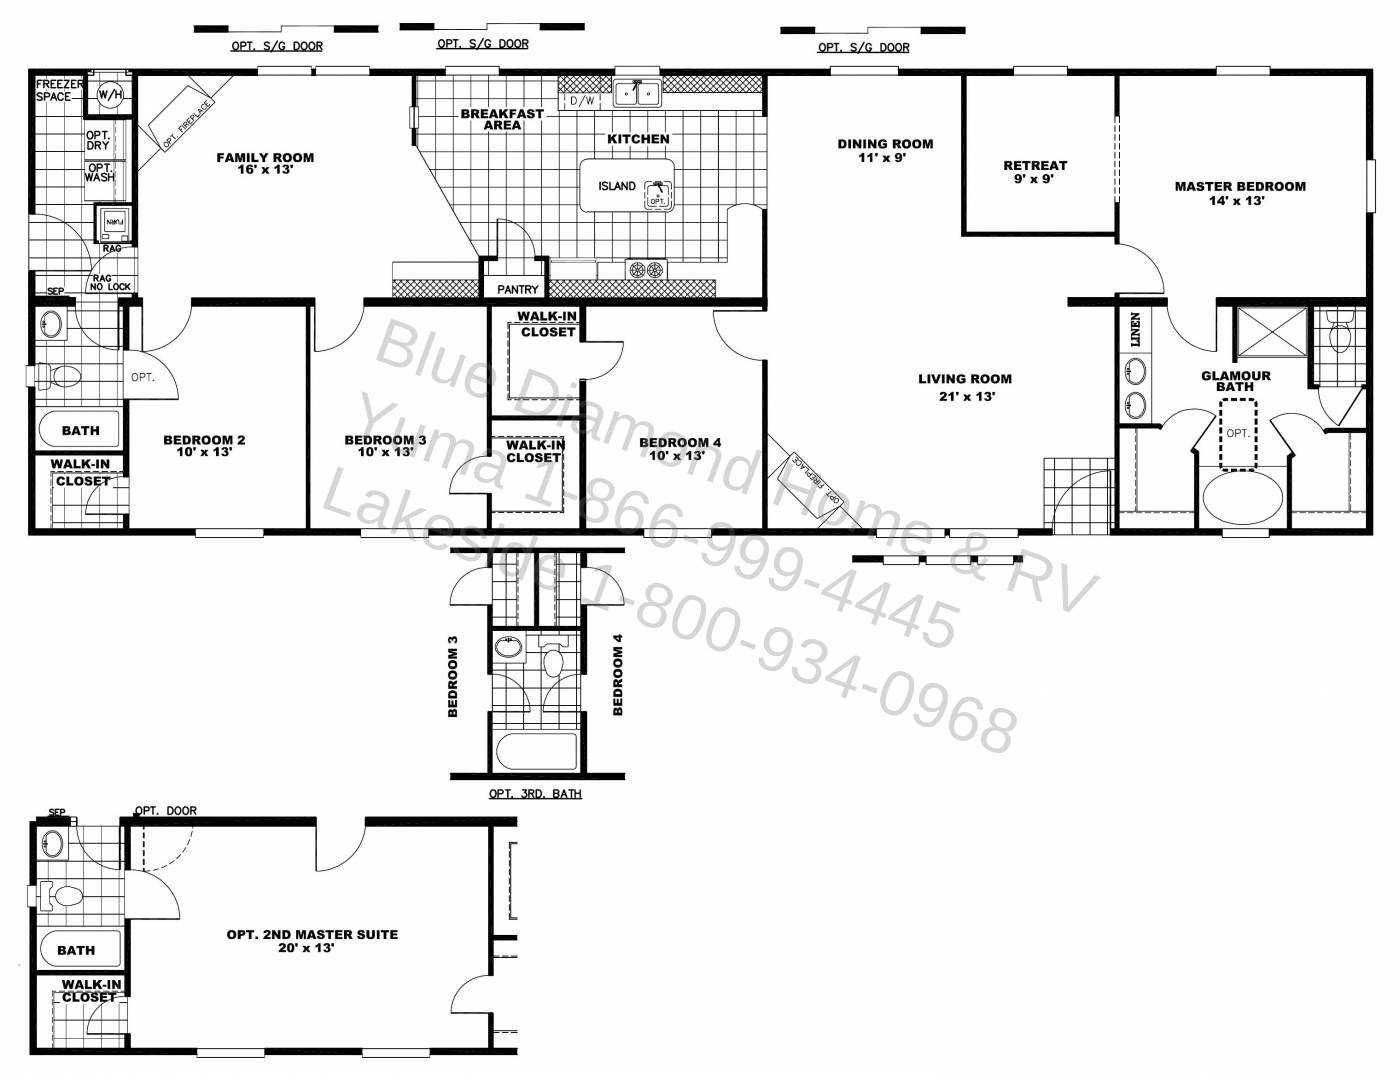 10 Best Floor Plans With Two Master Bedrooms For Your Room | Bedroom Mobile Homes With Two Master Bedrooms on mobile home bathrooms master, rvs with two master bedrooms, new homes with 2 master bedrooms, modular home 2 master bedrooms, single wide mobile home interiors bedrooms, apartments with two master bedrooms,